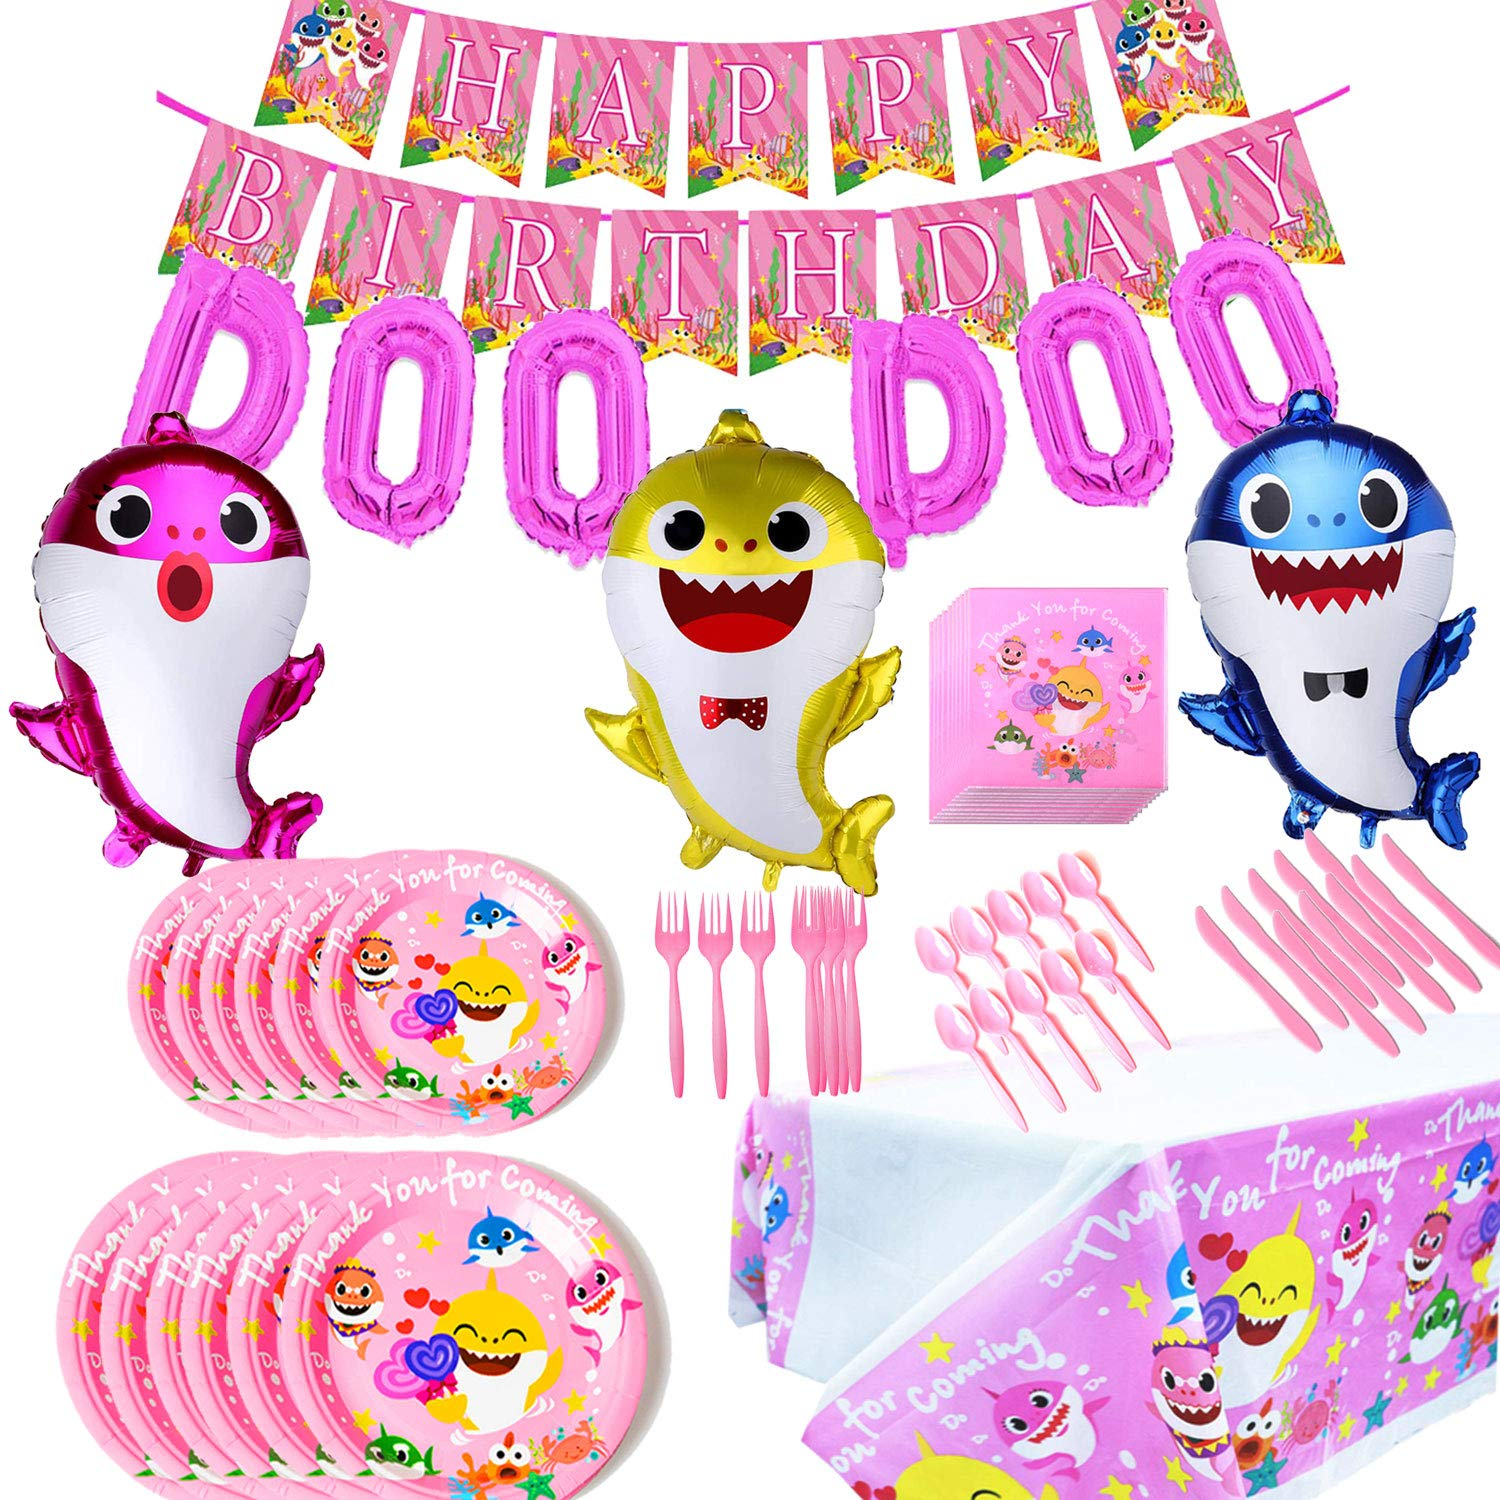 Baby Cute Shark Party Supplies Birthday Decorations Set, Pink for Girls Baby Shark DOO DOO Balloons Happy Birthday Banner Cake Topper Baby Cute Shark Party Décor by BAODAN